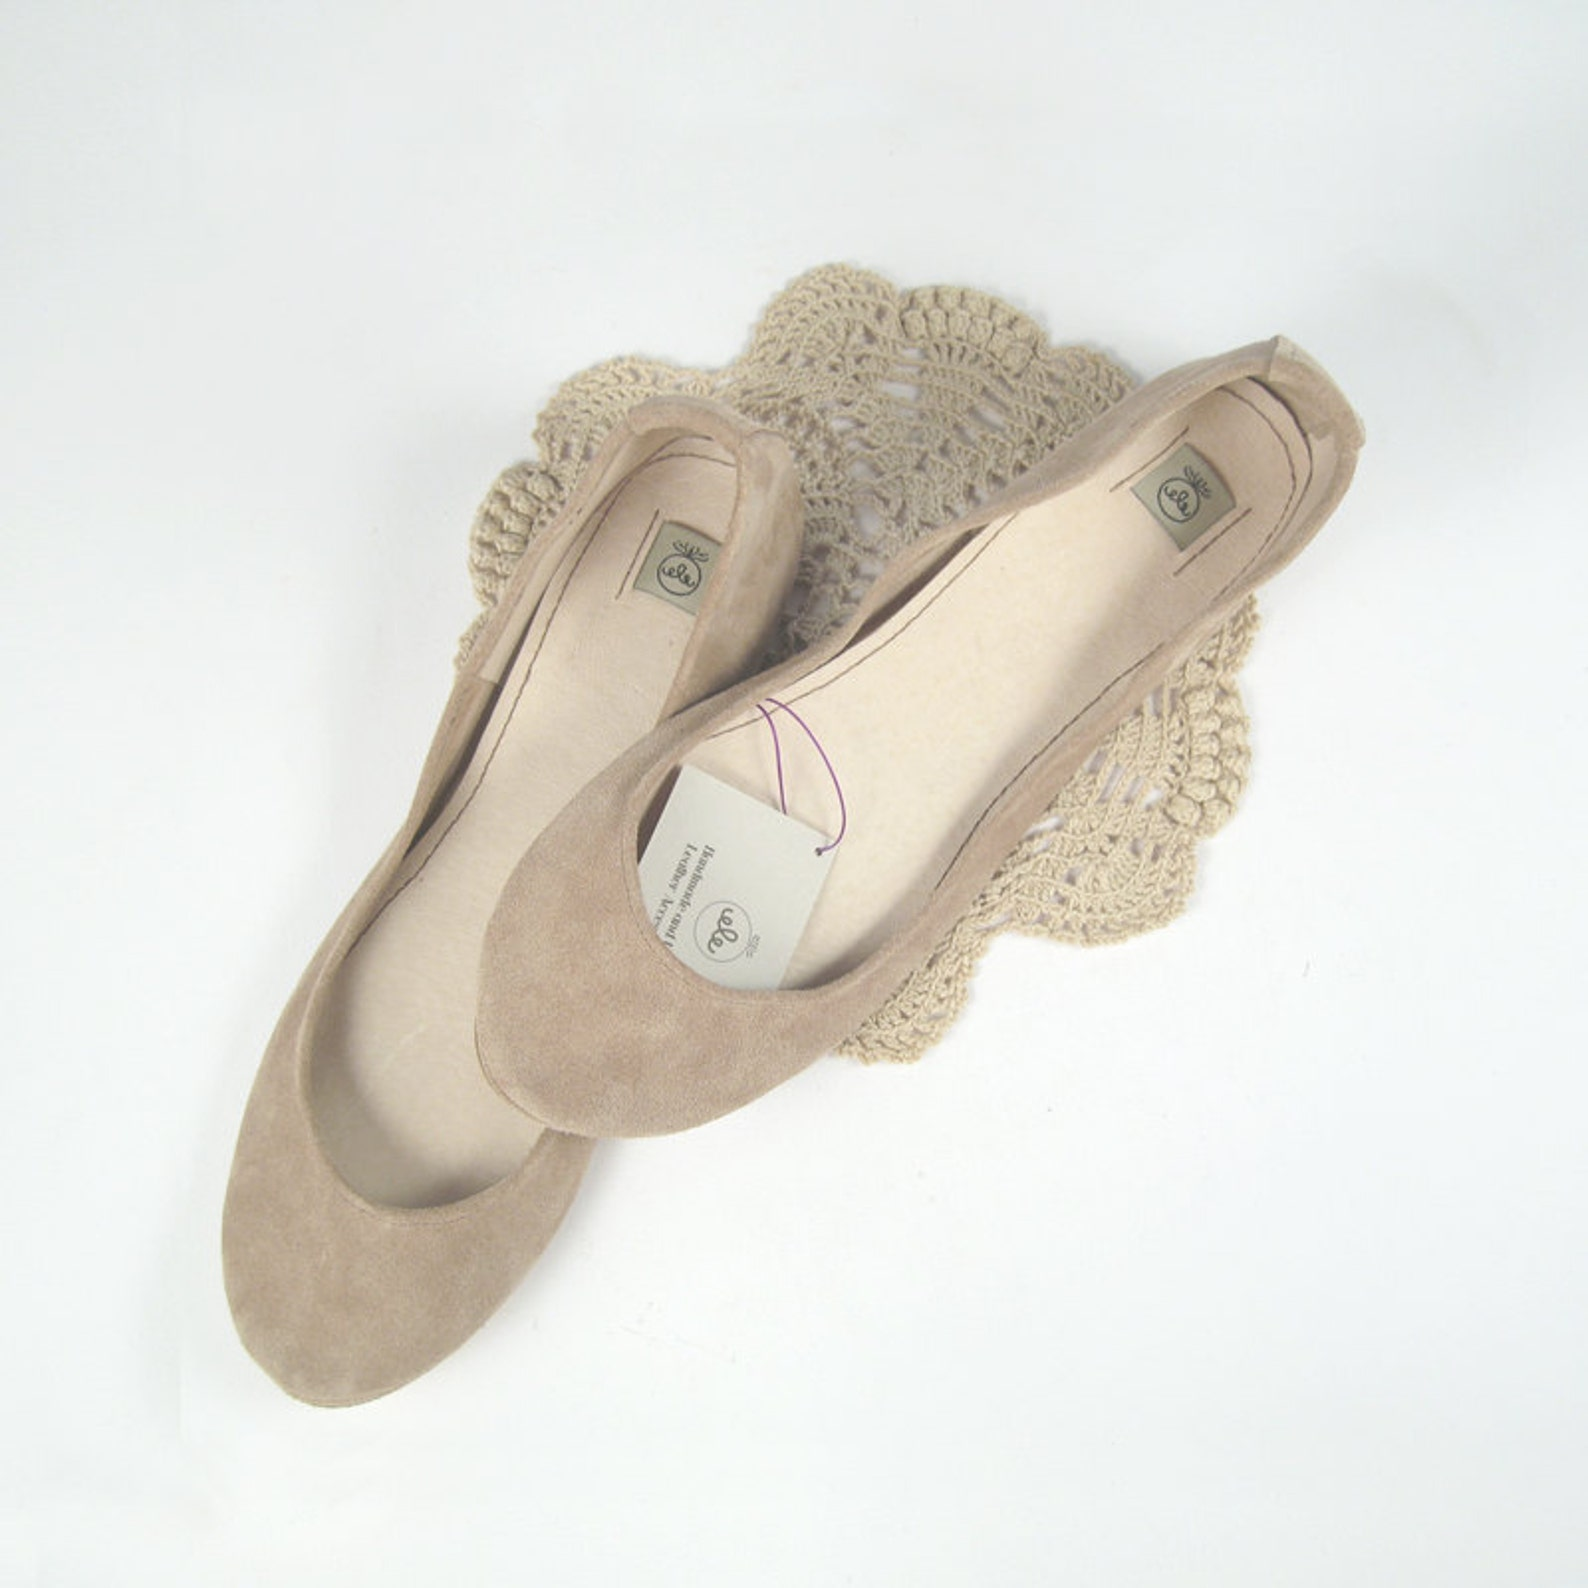 ballet flats shoes. woman shoes. blush bridal shoes. smoke rose shoes. nude ballet flats. bridal flats. wedding shoes. bridesmai